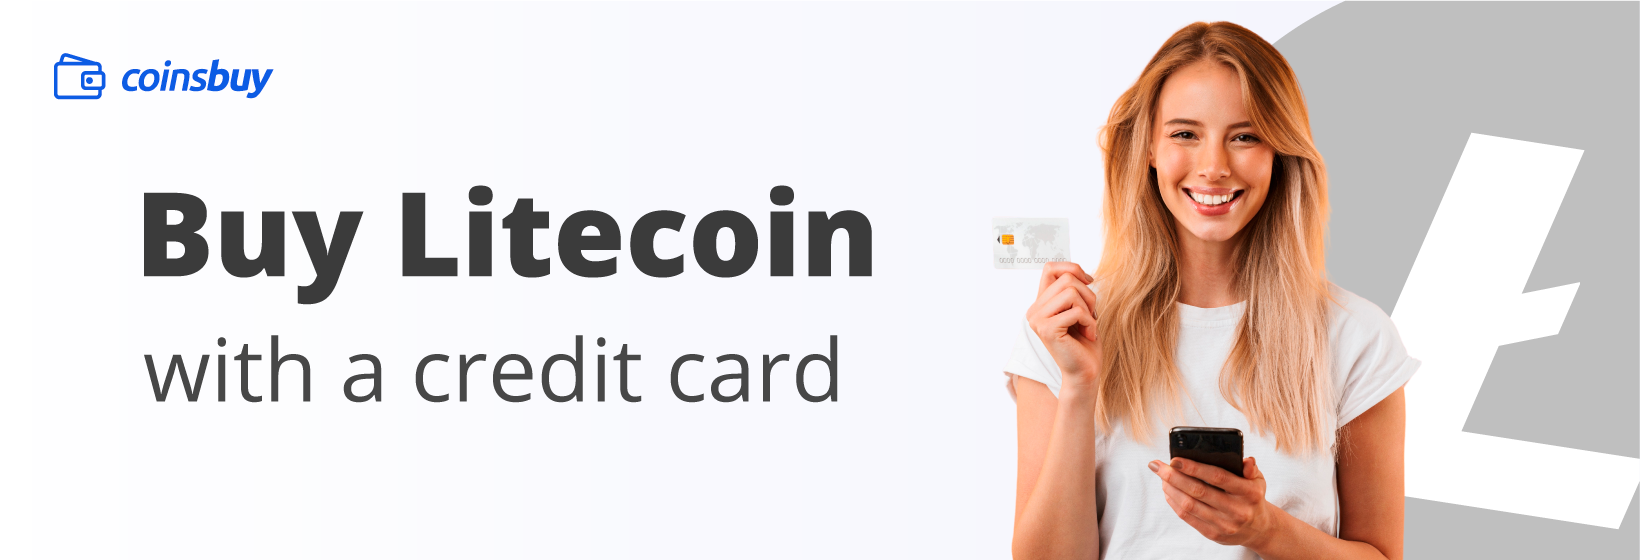 Buy Litecoin with credit card